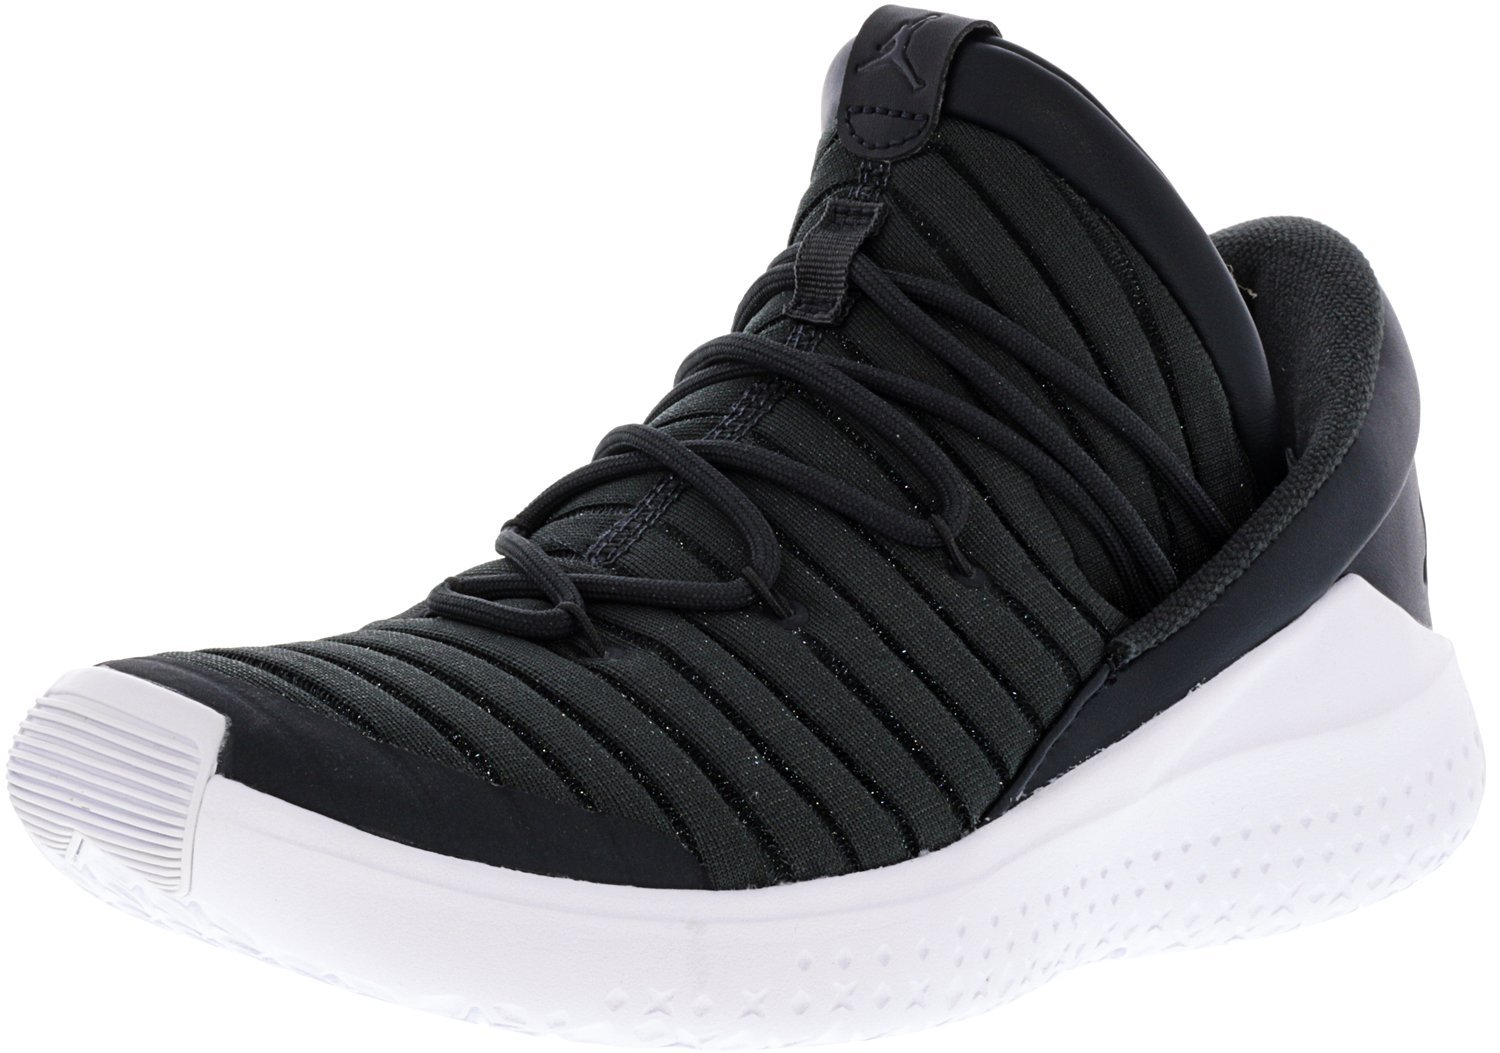 Nike Herren Jordan Flight Luxe Anthrazit Textil/Synthetik Sneaker  44.5 EU|Anthrazit (Anthracite/Black/White)